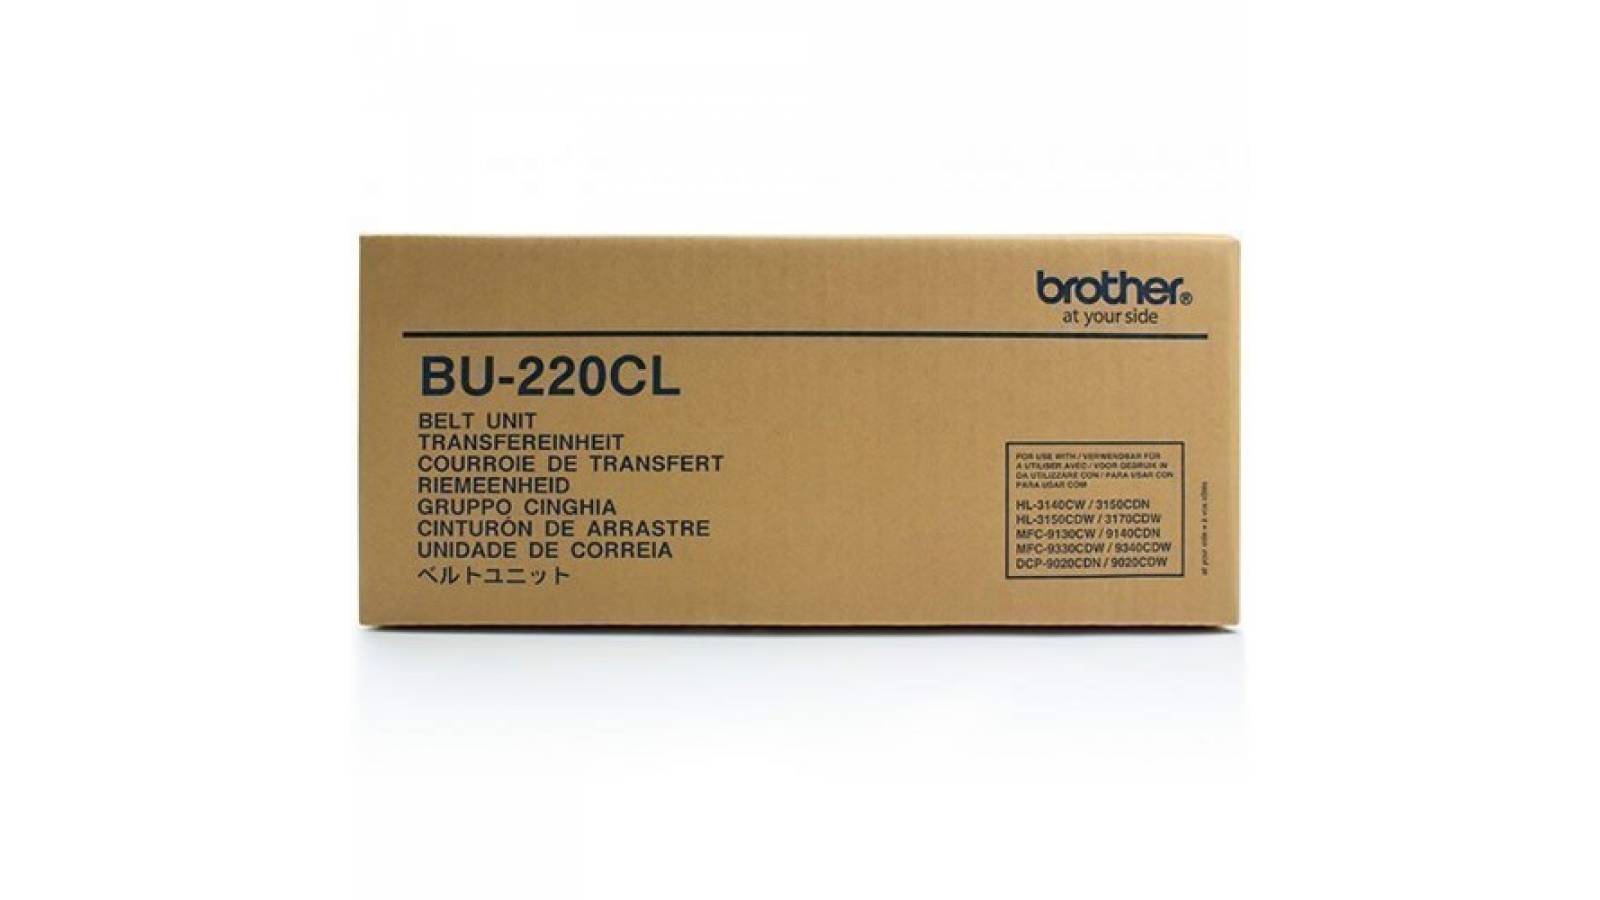 Banda de transferencia Brother BU-220CL